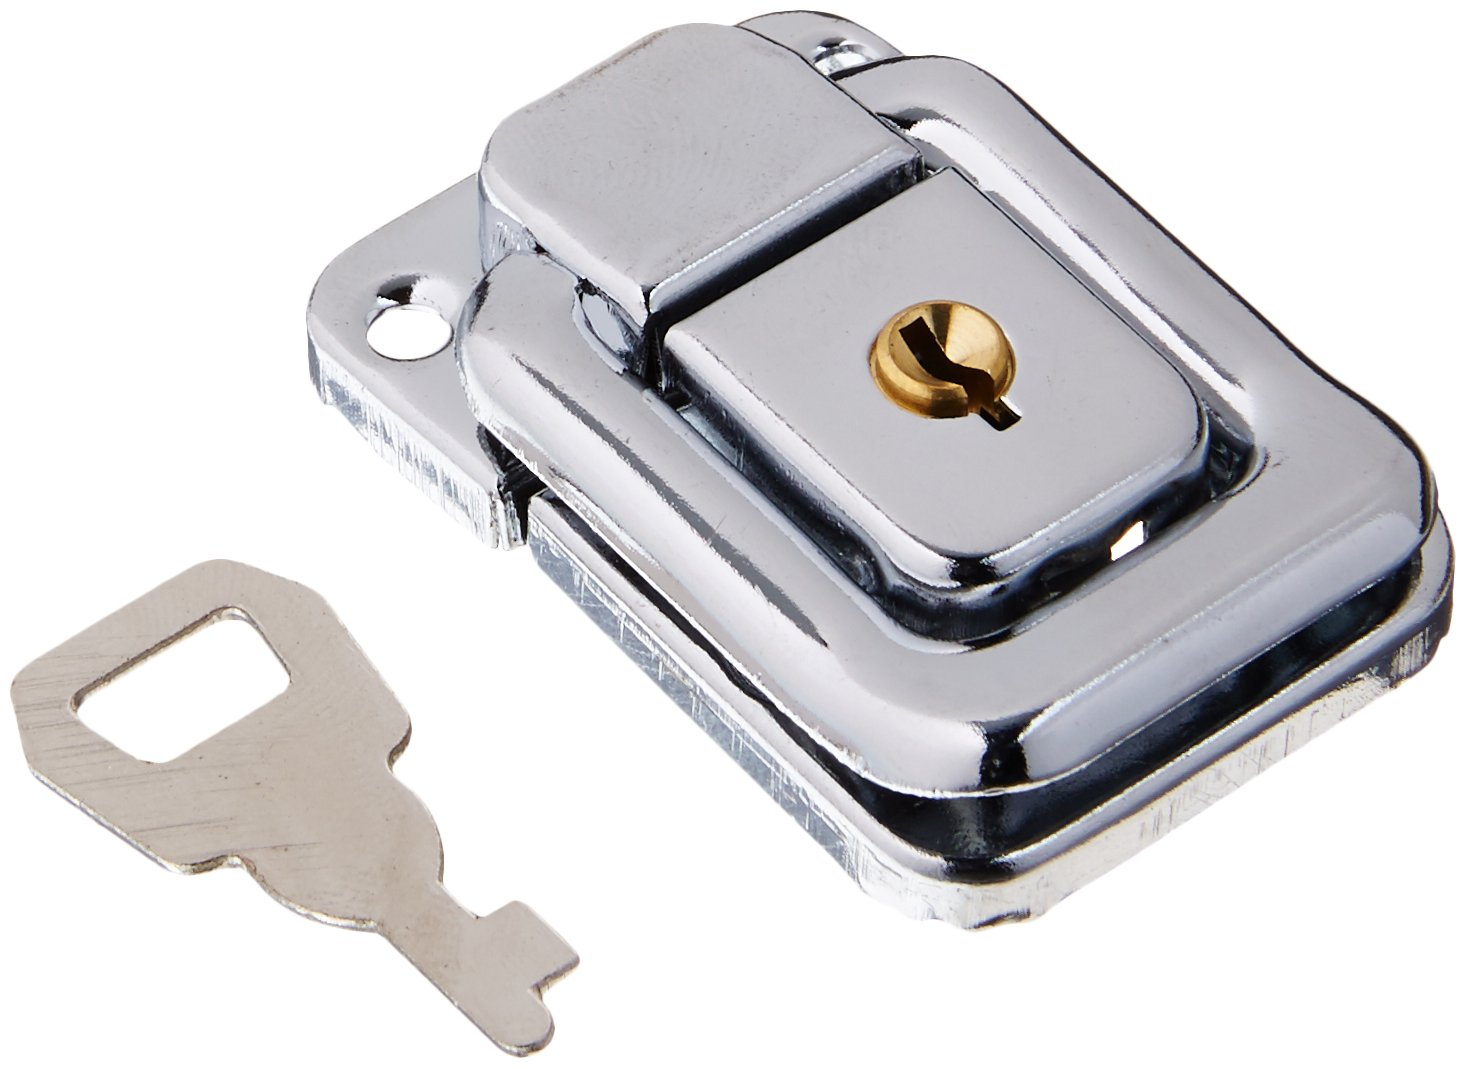 Uxcell a15122800ux1023 48mmx32mm Suitcase Box Chest Trunk Lock Toggle Catch Latch Silver Tone